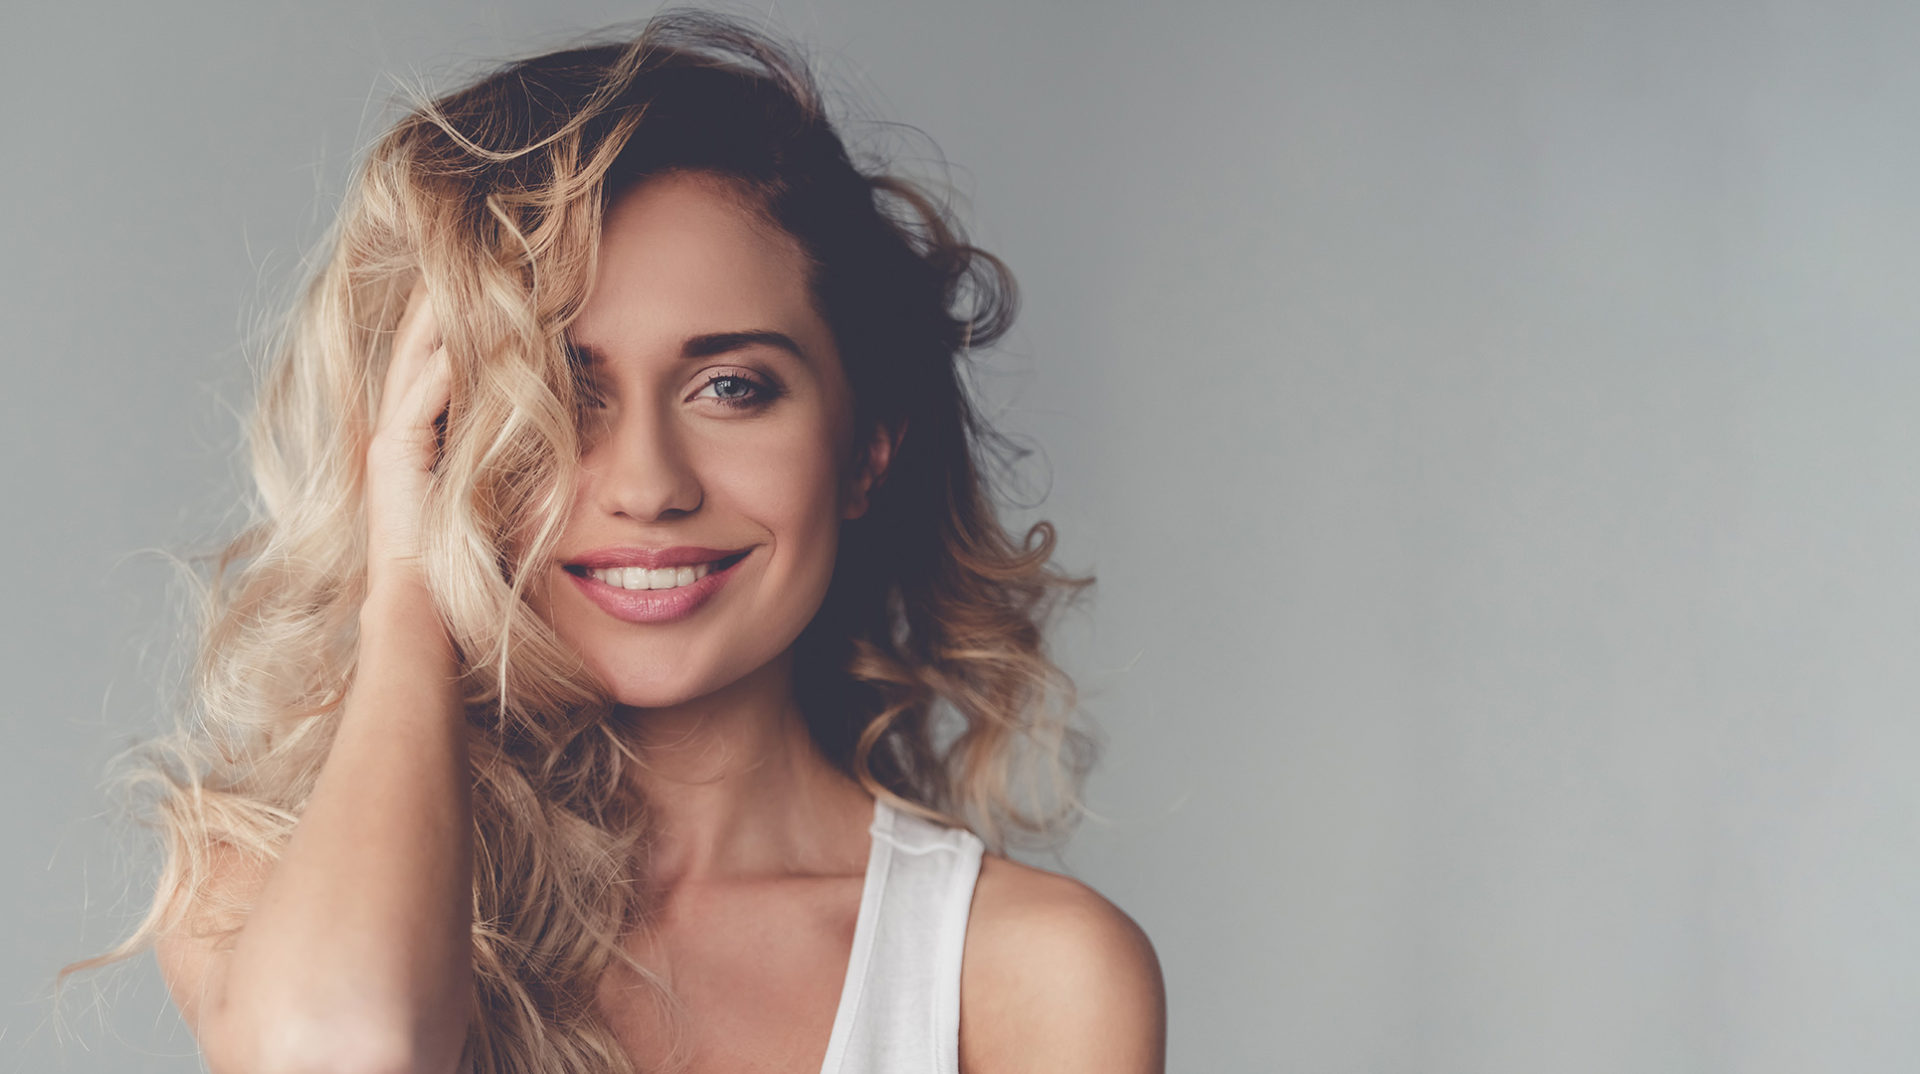 cosmetic procedures for women in their 20s